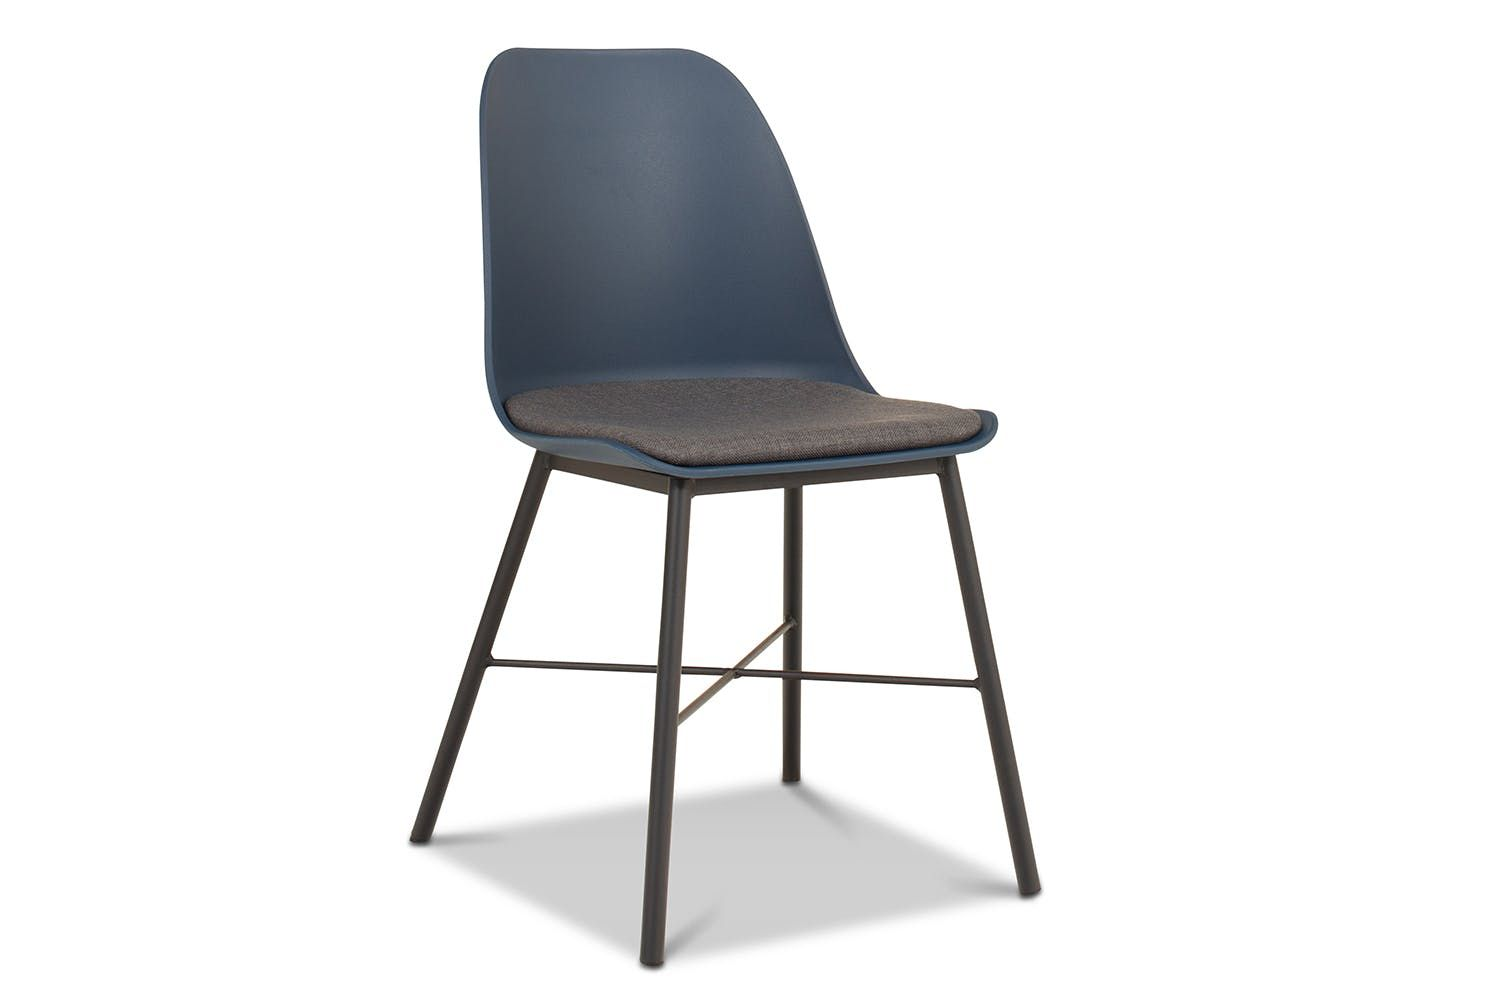 Brynn Dining Chair Blue Chair Dining Chairs Seat Pads